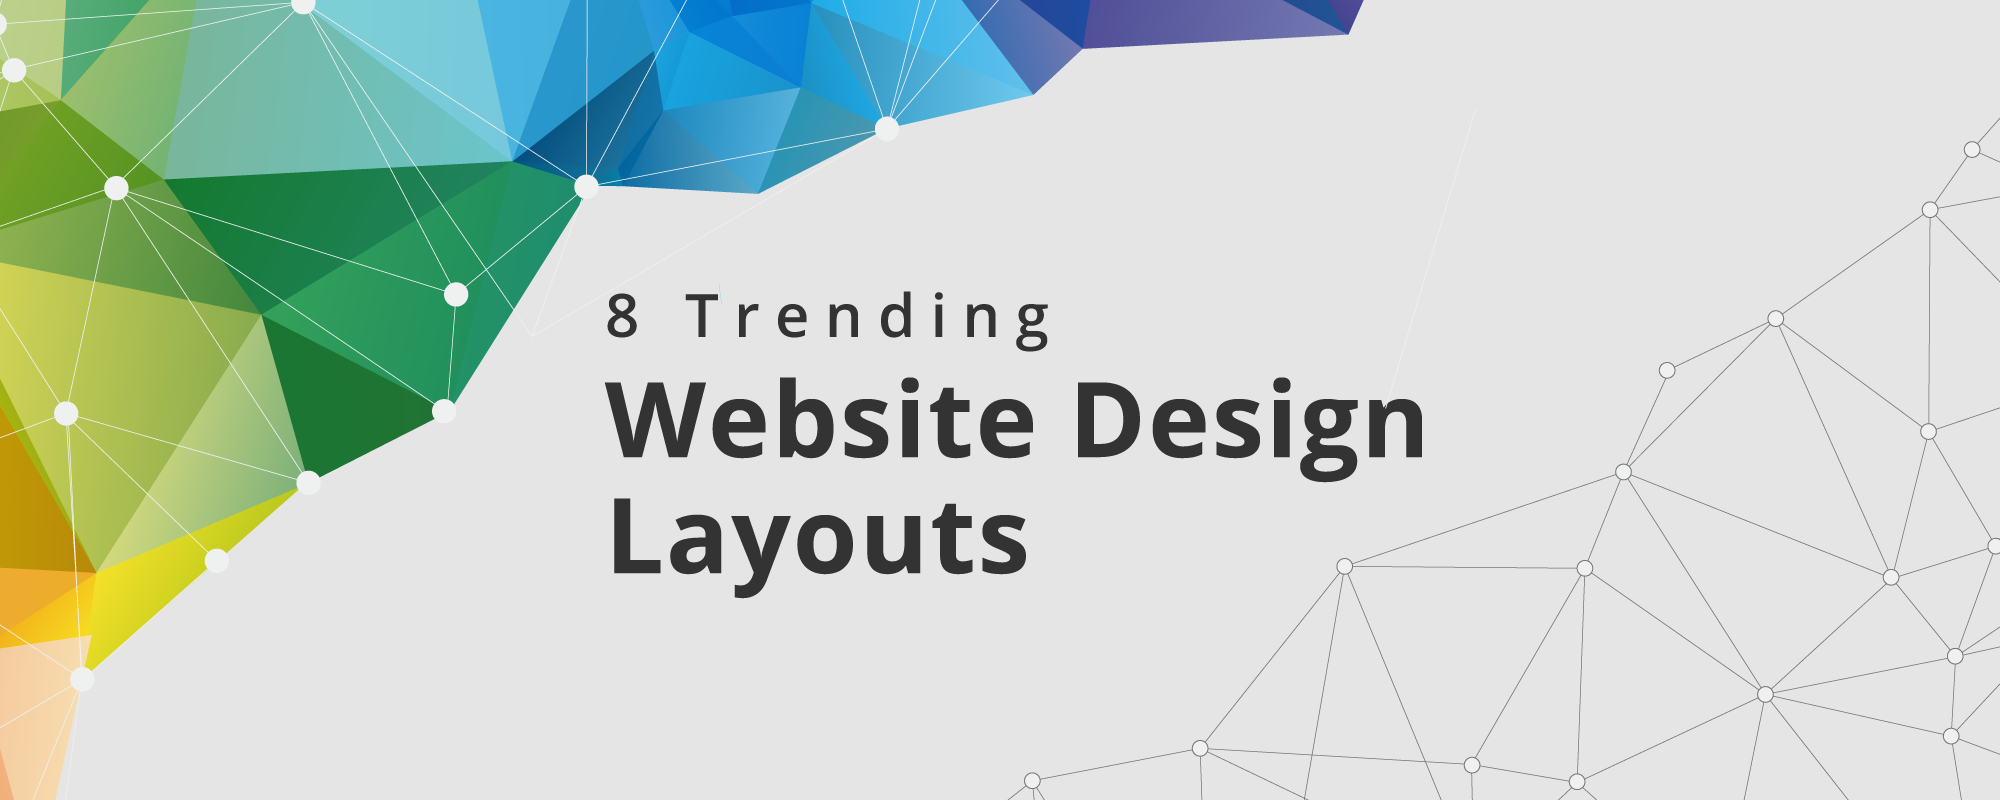 8 Trending Website Design Patterns For Online Businesses